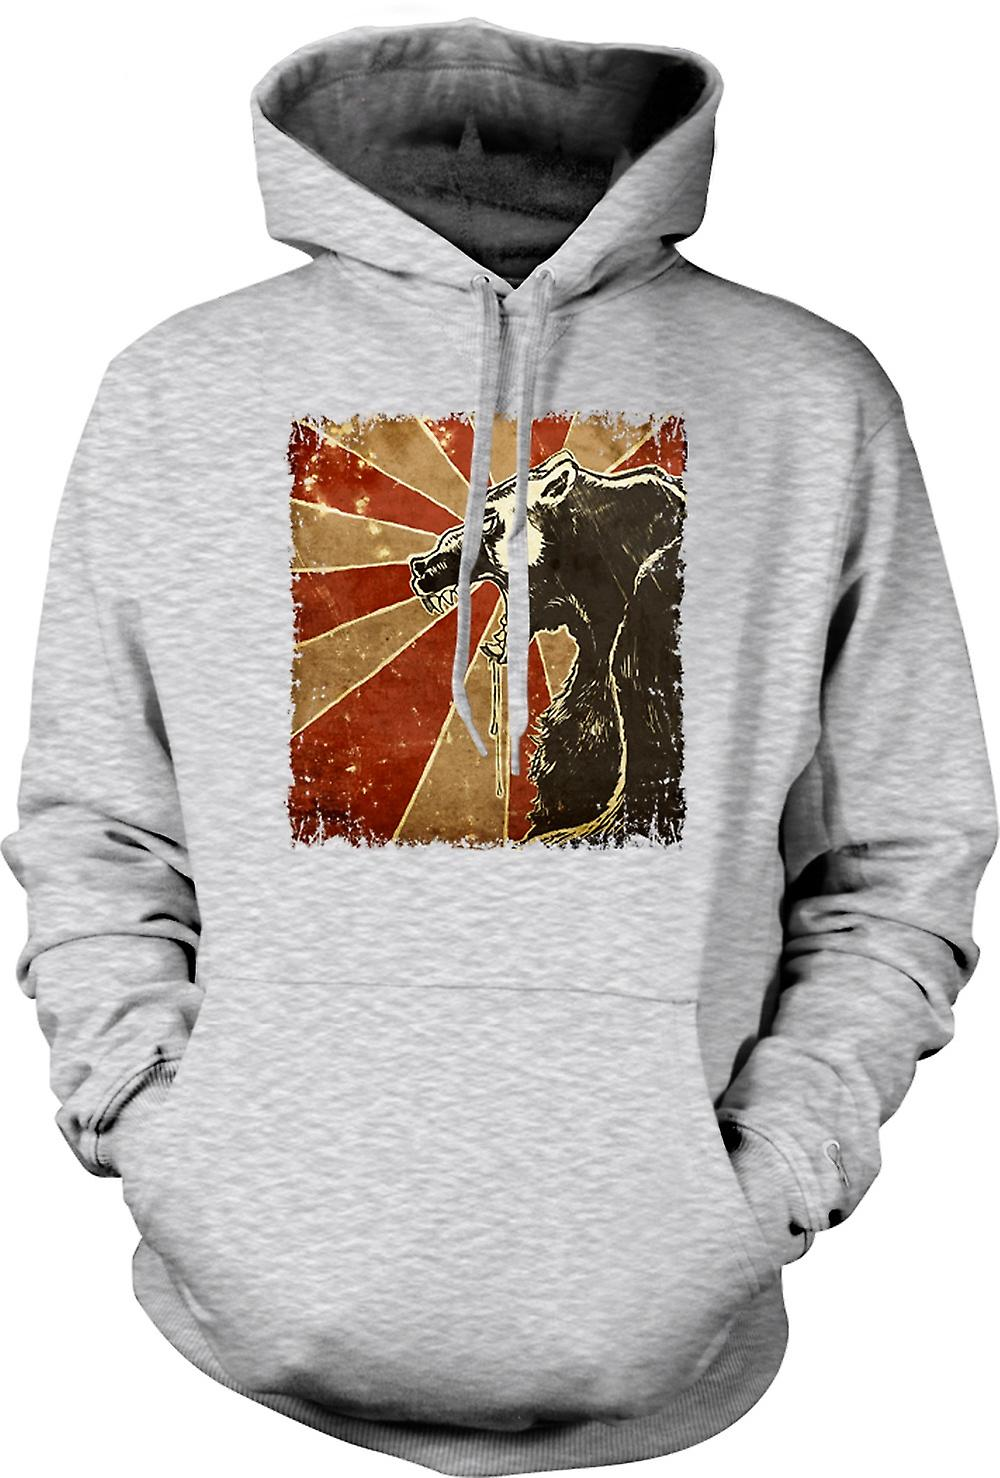 Mens Hoodie - ours russe - Affiche rétro cool